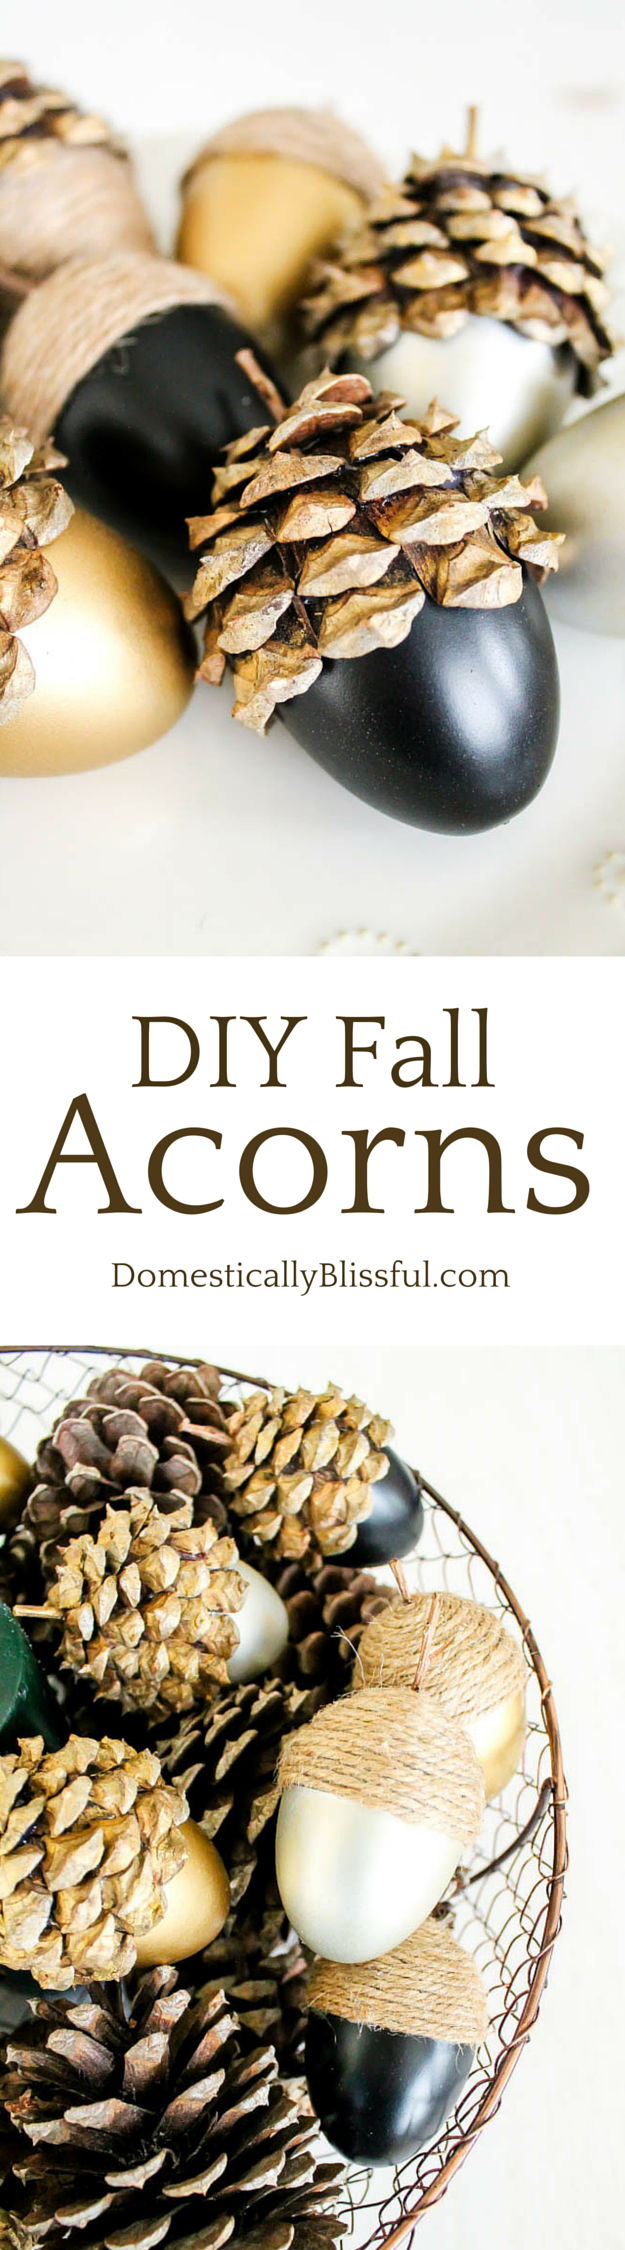 DIY Fall Acorns tutorial by Domestically Blissful